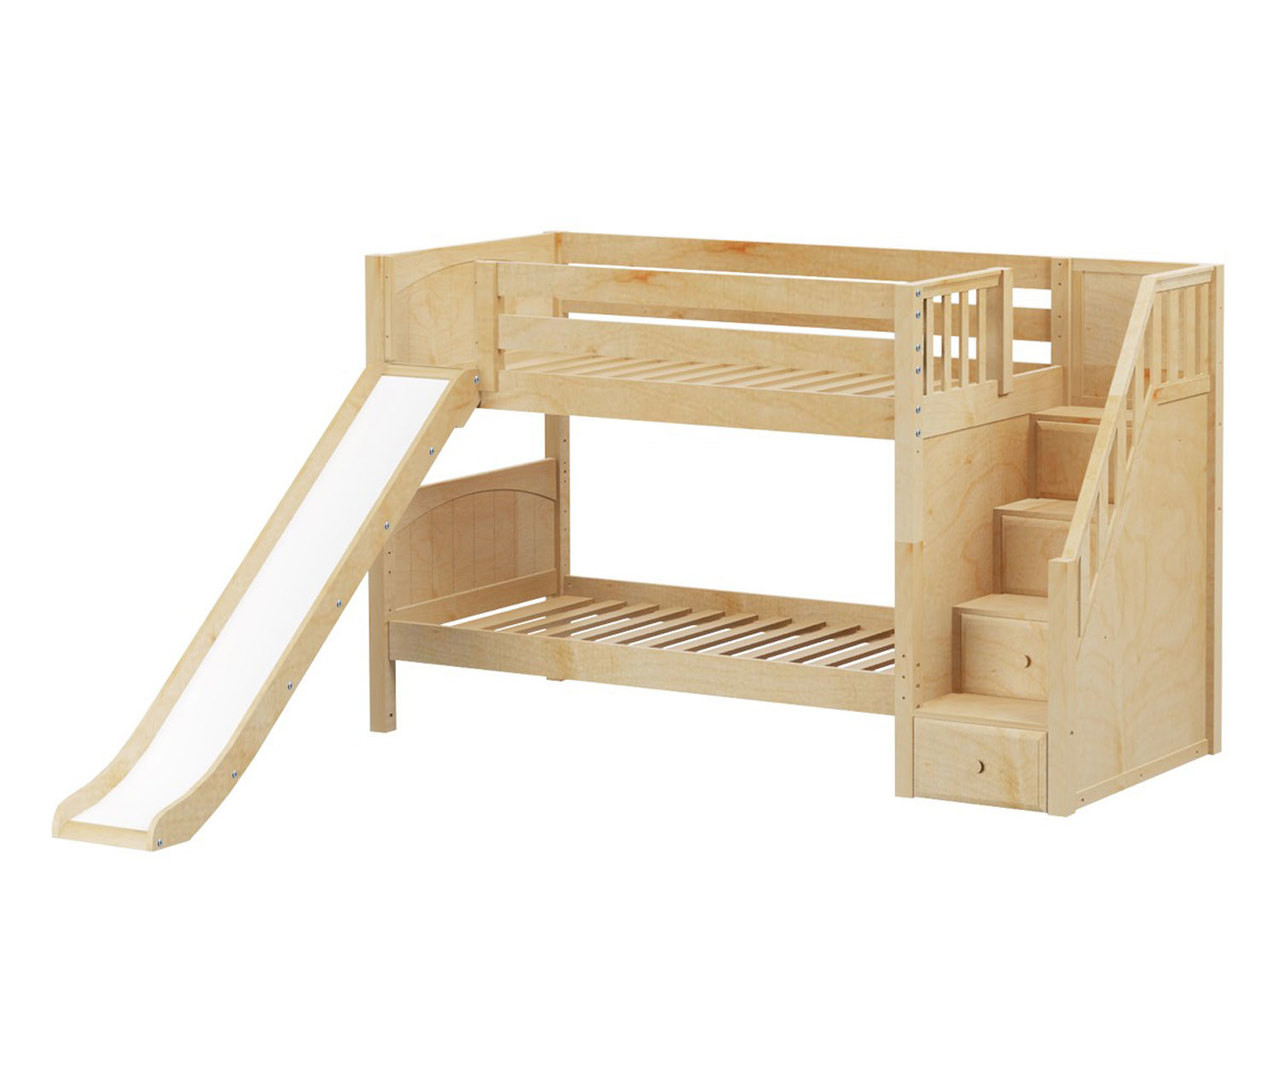 Picture of: Maxtrix Sniggle Low Bunk Bed With Stairs And Slide Matrix Kids Furniture Solid Wood Bed Frames